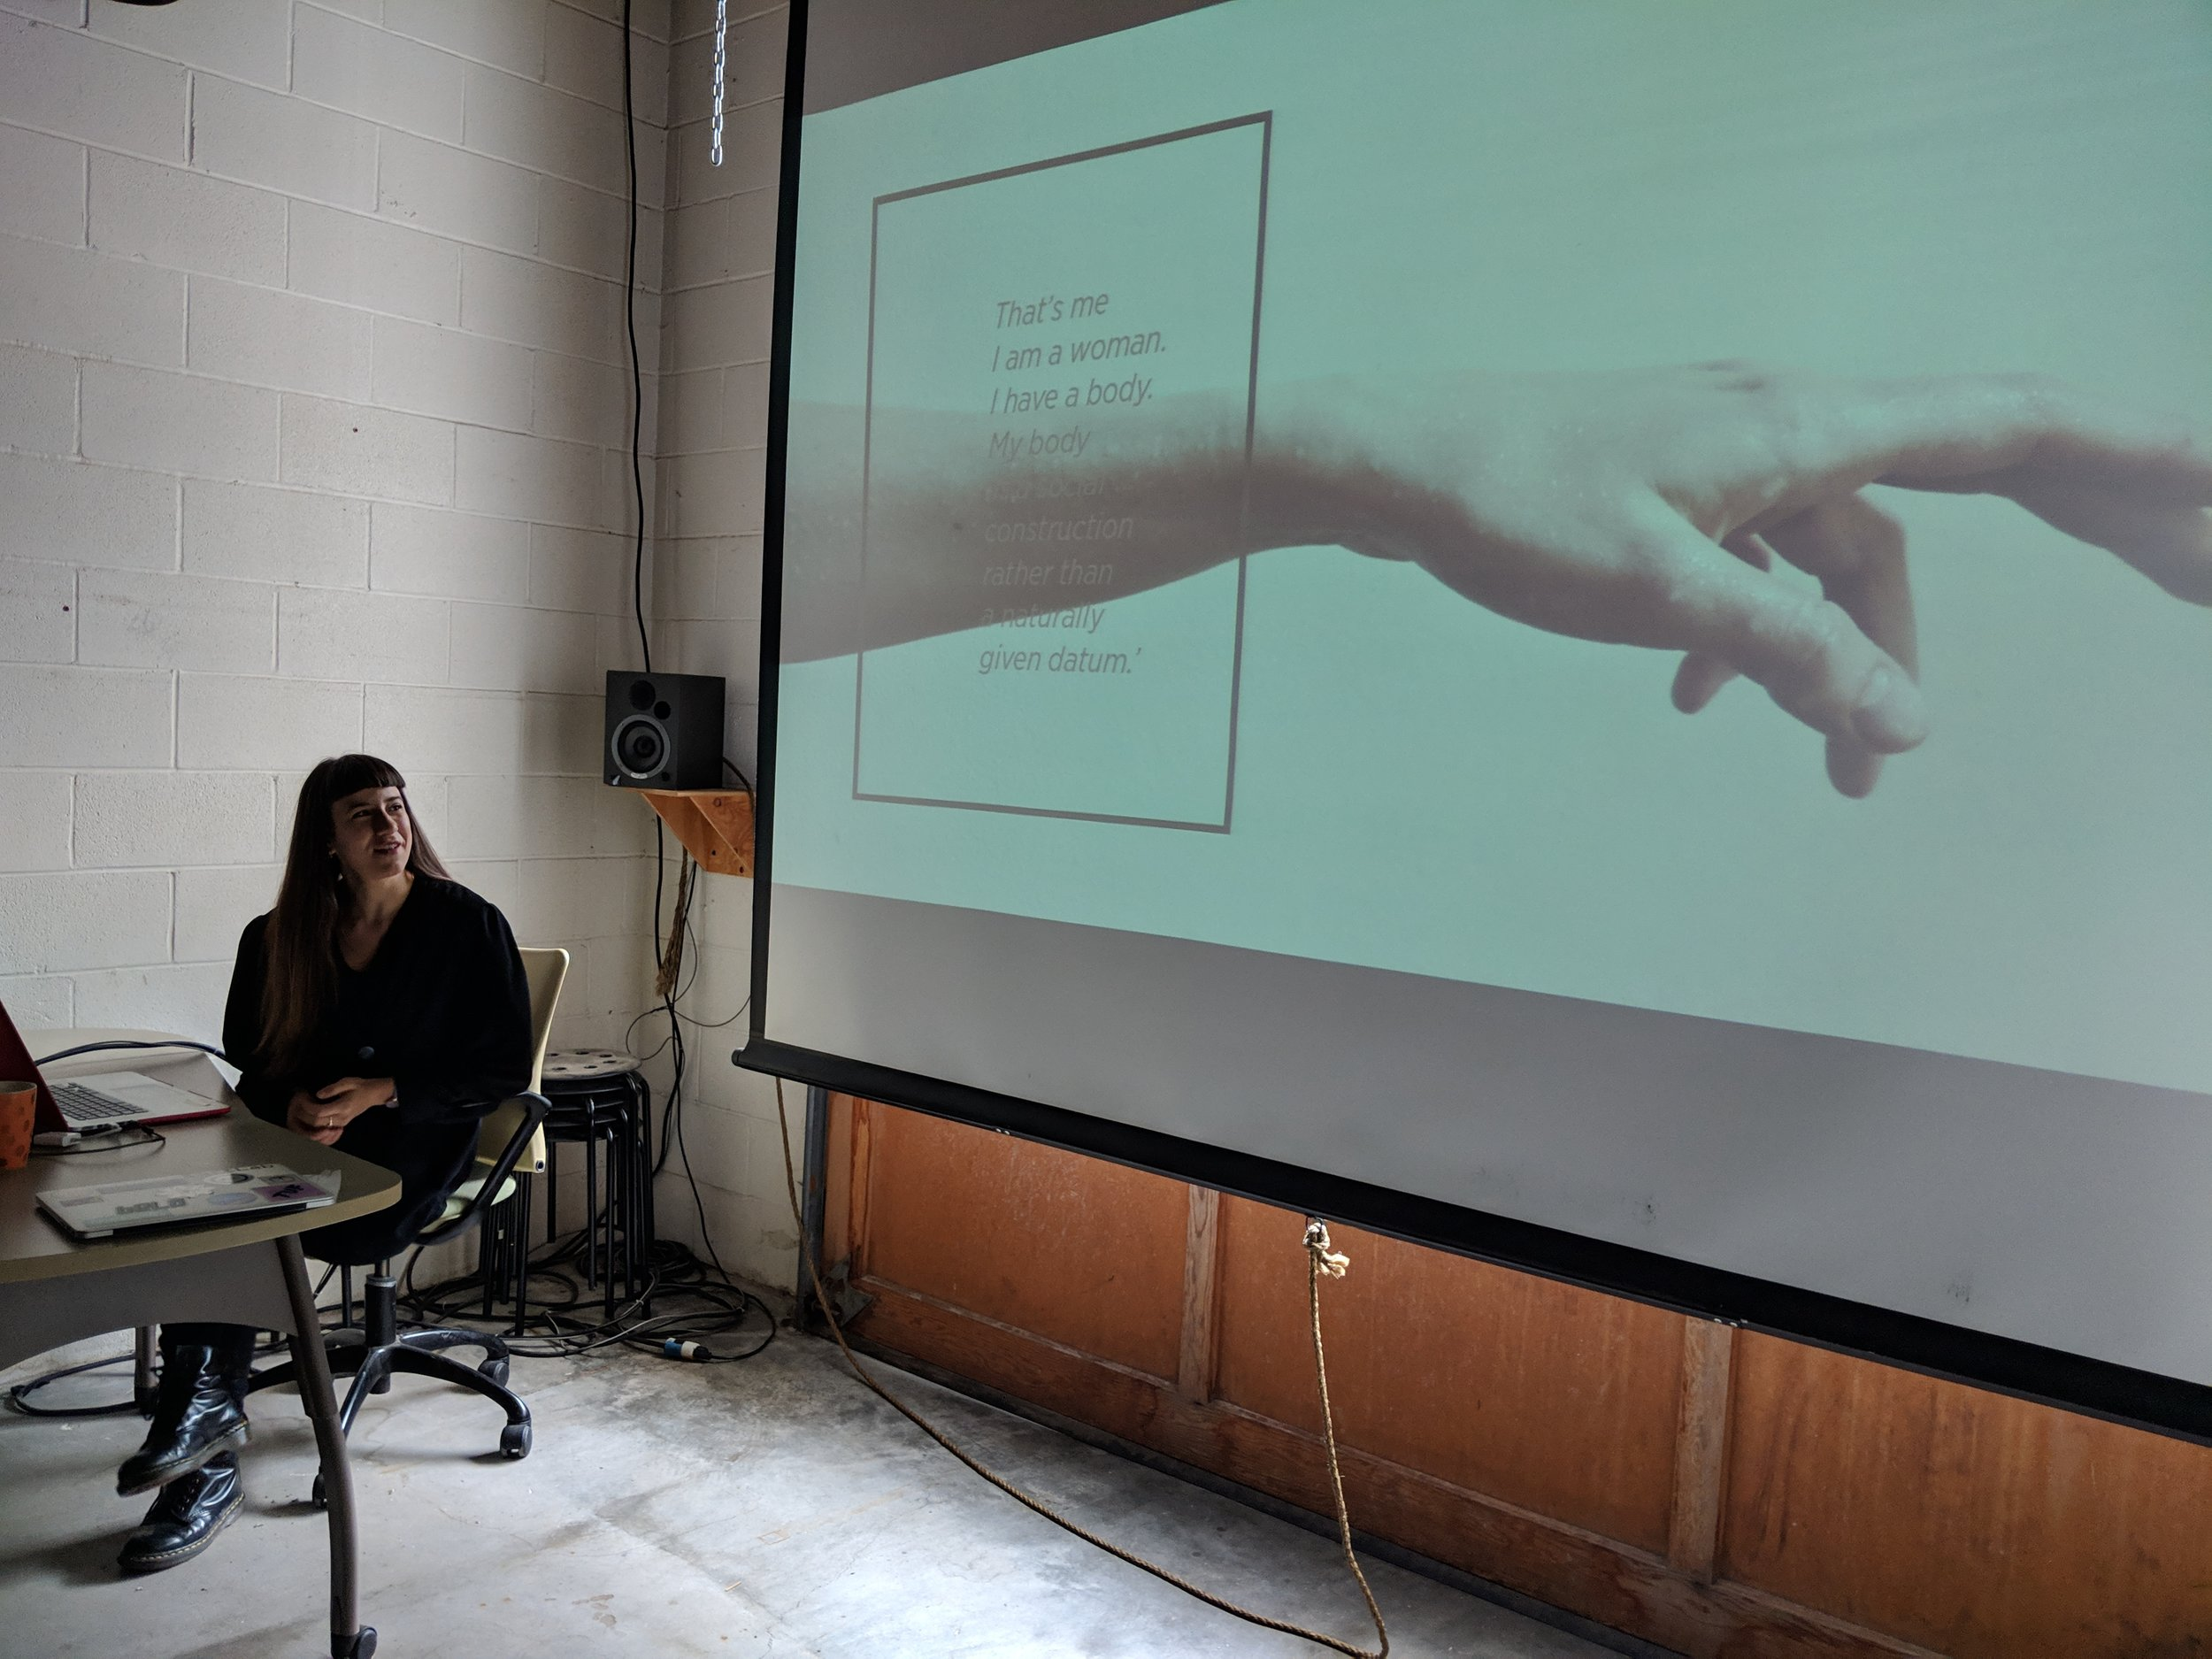 "Giulia Tomasello introducing her work to the DXARTS 490 students with this quote from Simone de Beauvoir: ""That's me. I am a woman. My body is a social construction rather than a naturally given datum""."